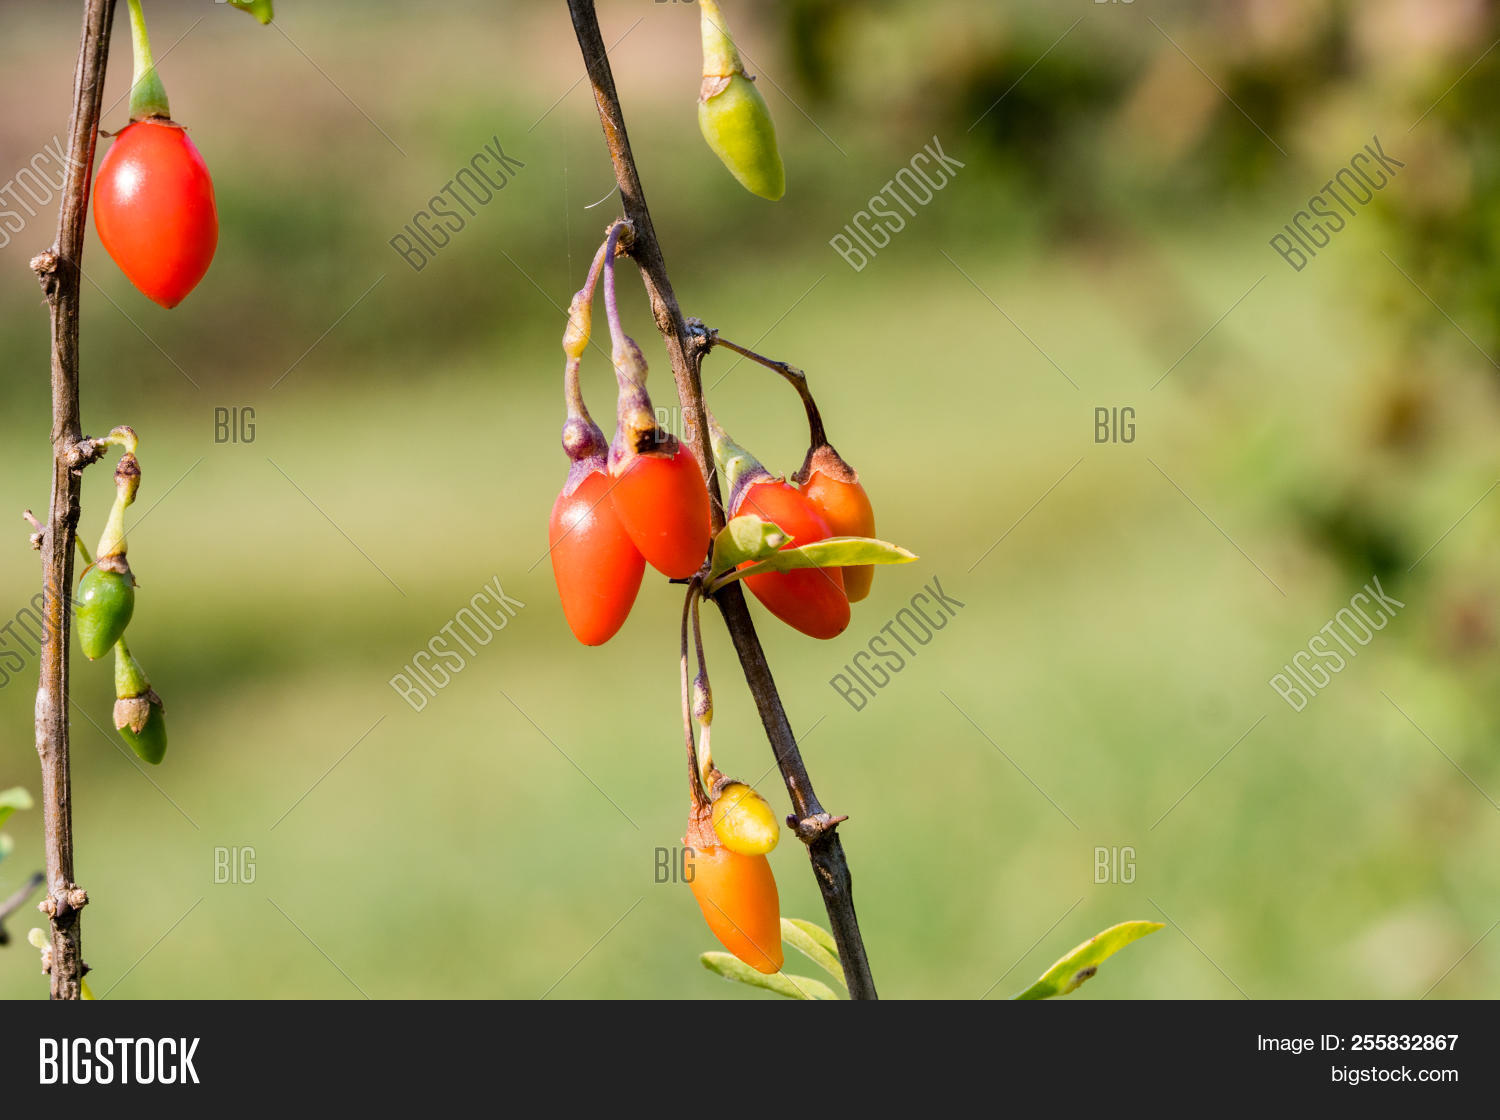 Goji Berry Or Wolfberry Ripe Berries On The Branch Closeup